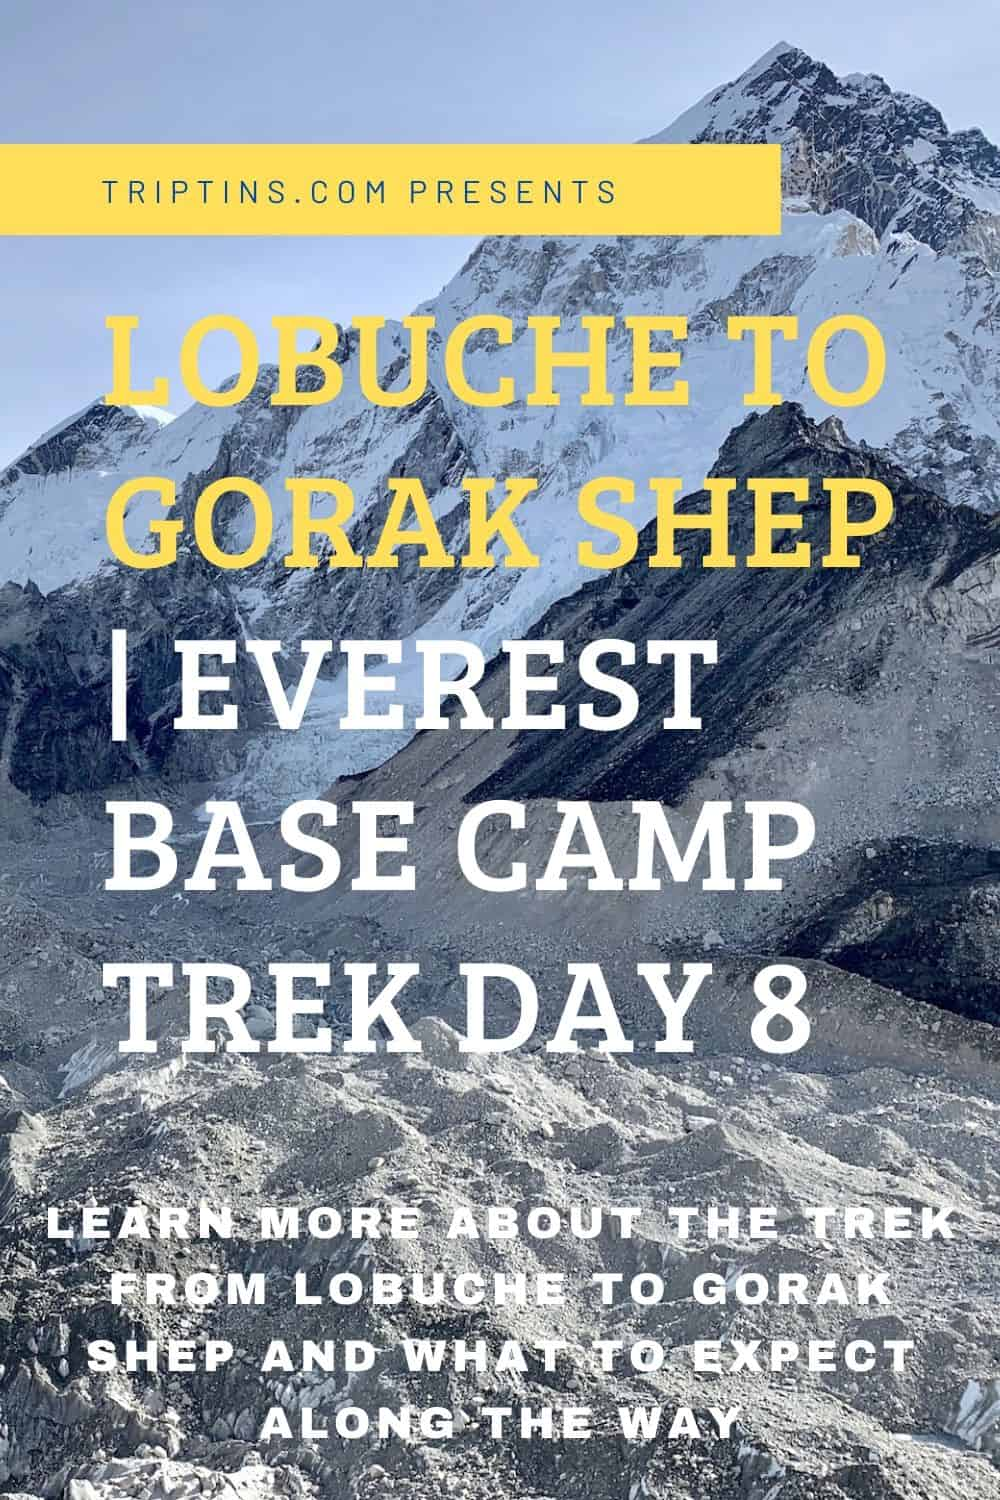 Lobuche to Gorak Shep Everest